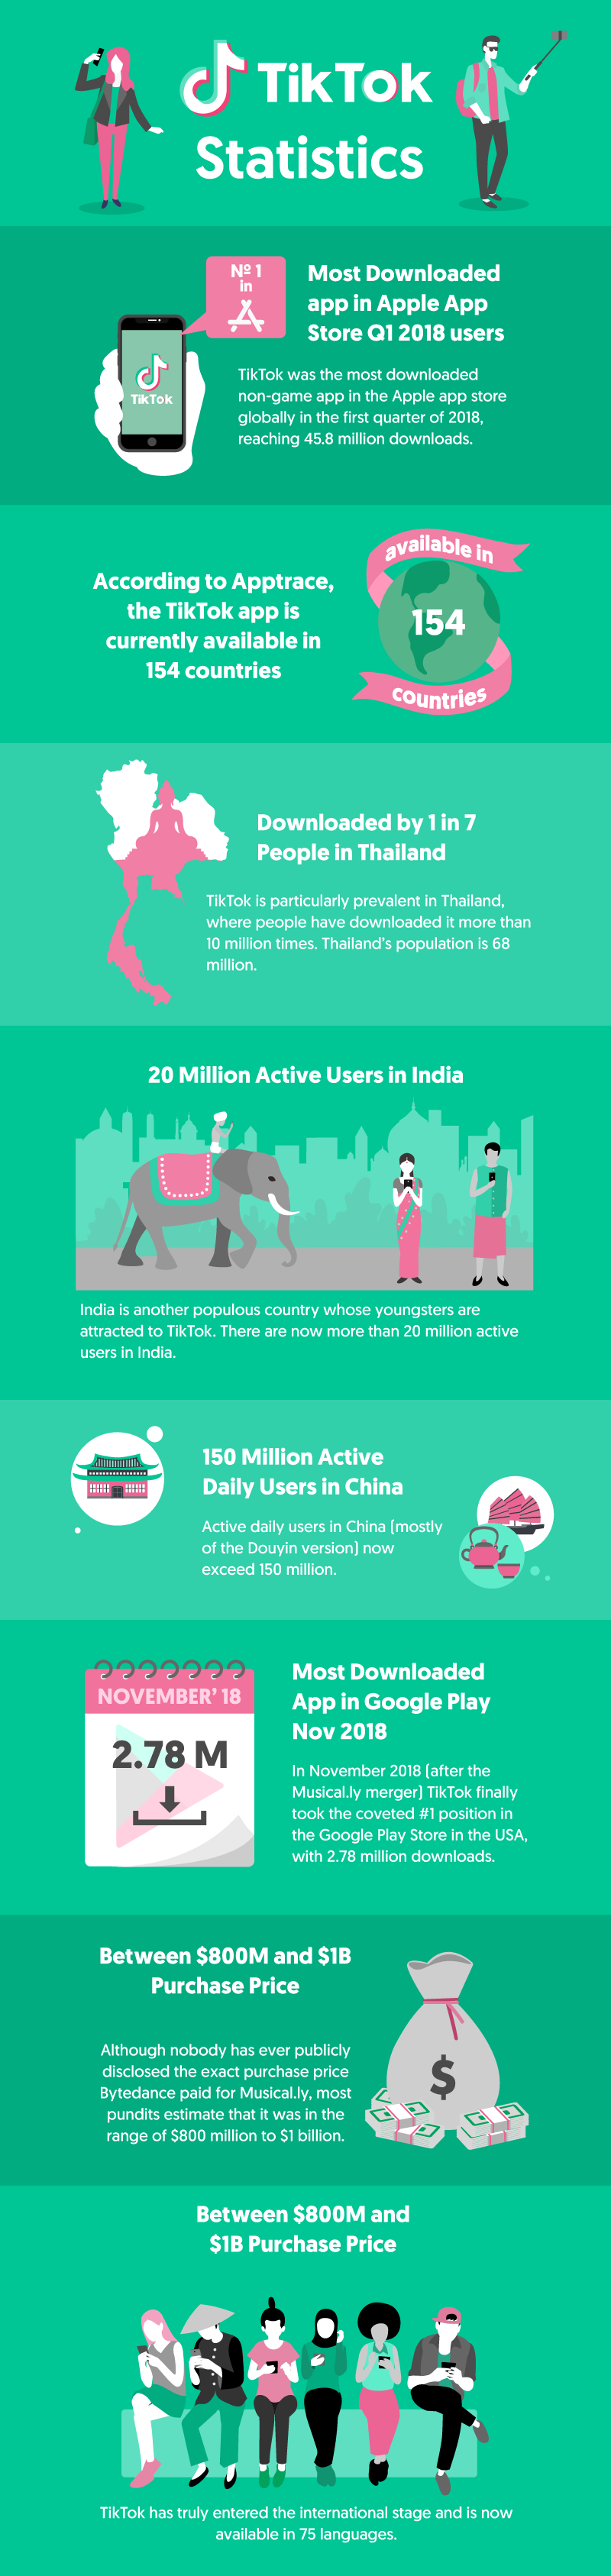 37 Tiktok Statistics That Will Blow Your Mind Infographic Facebook Strategy Twitter Strategy Statistics